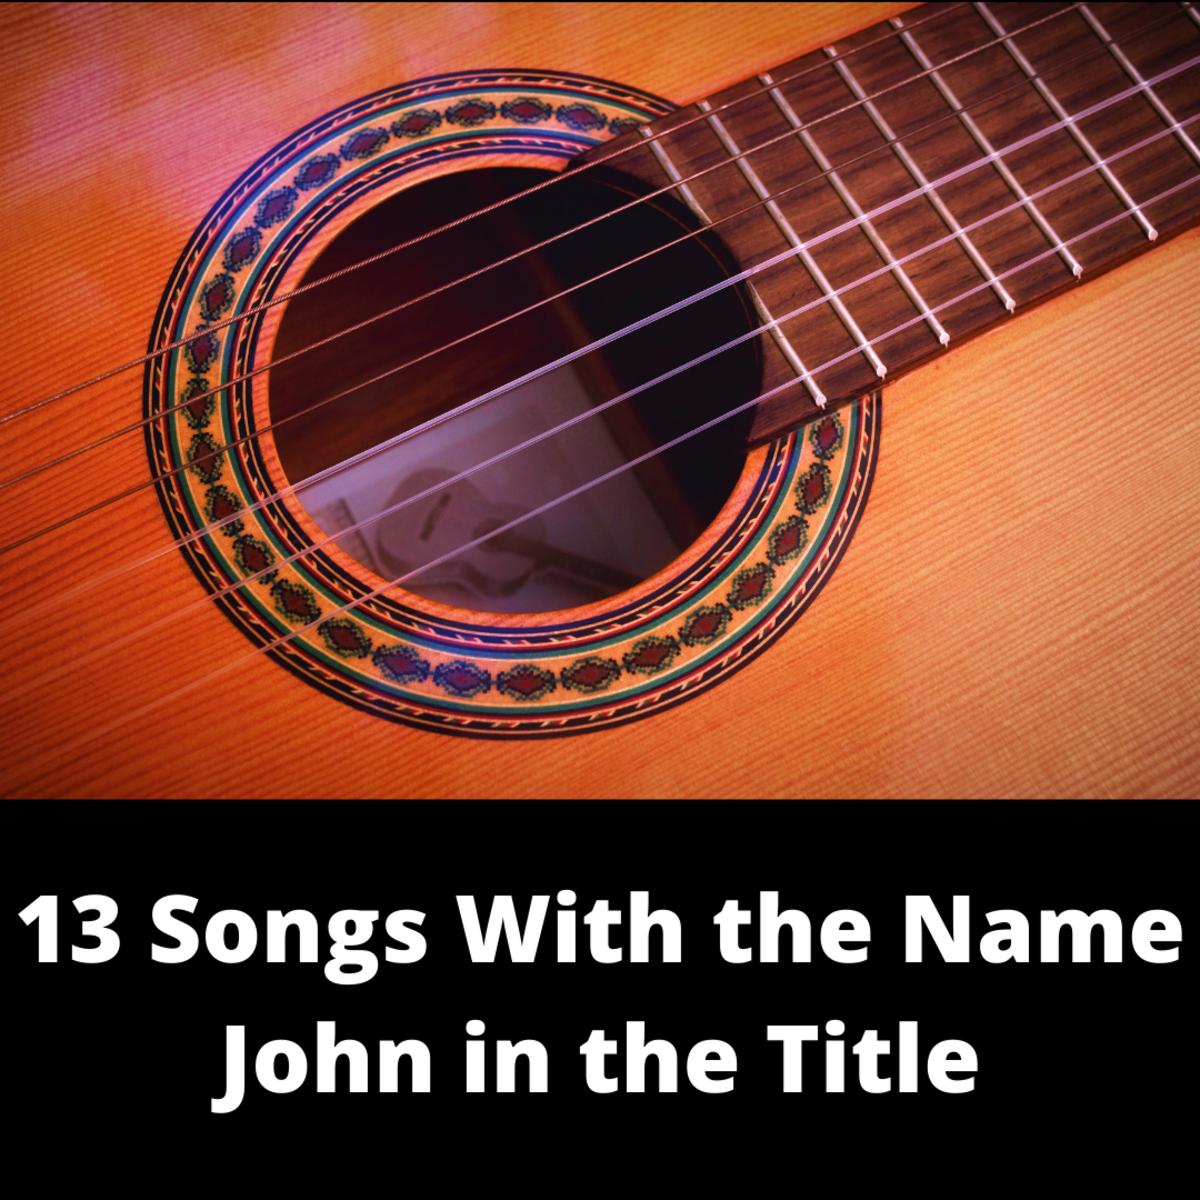 13 Songs With the Name John in the Title